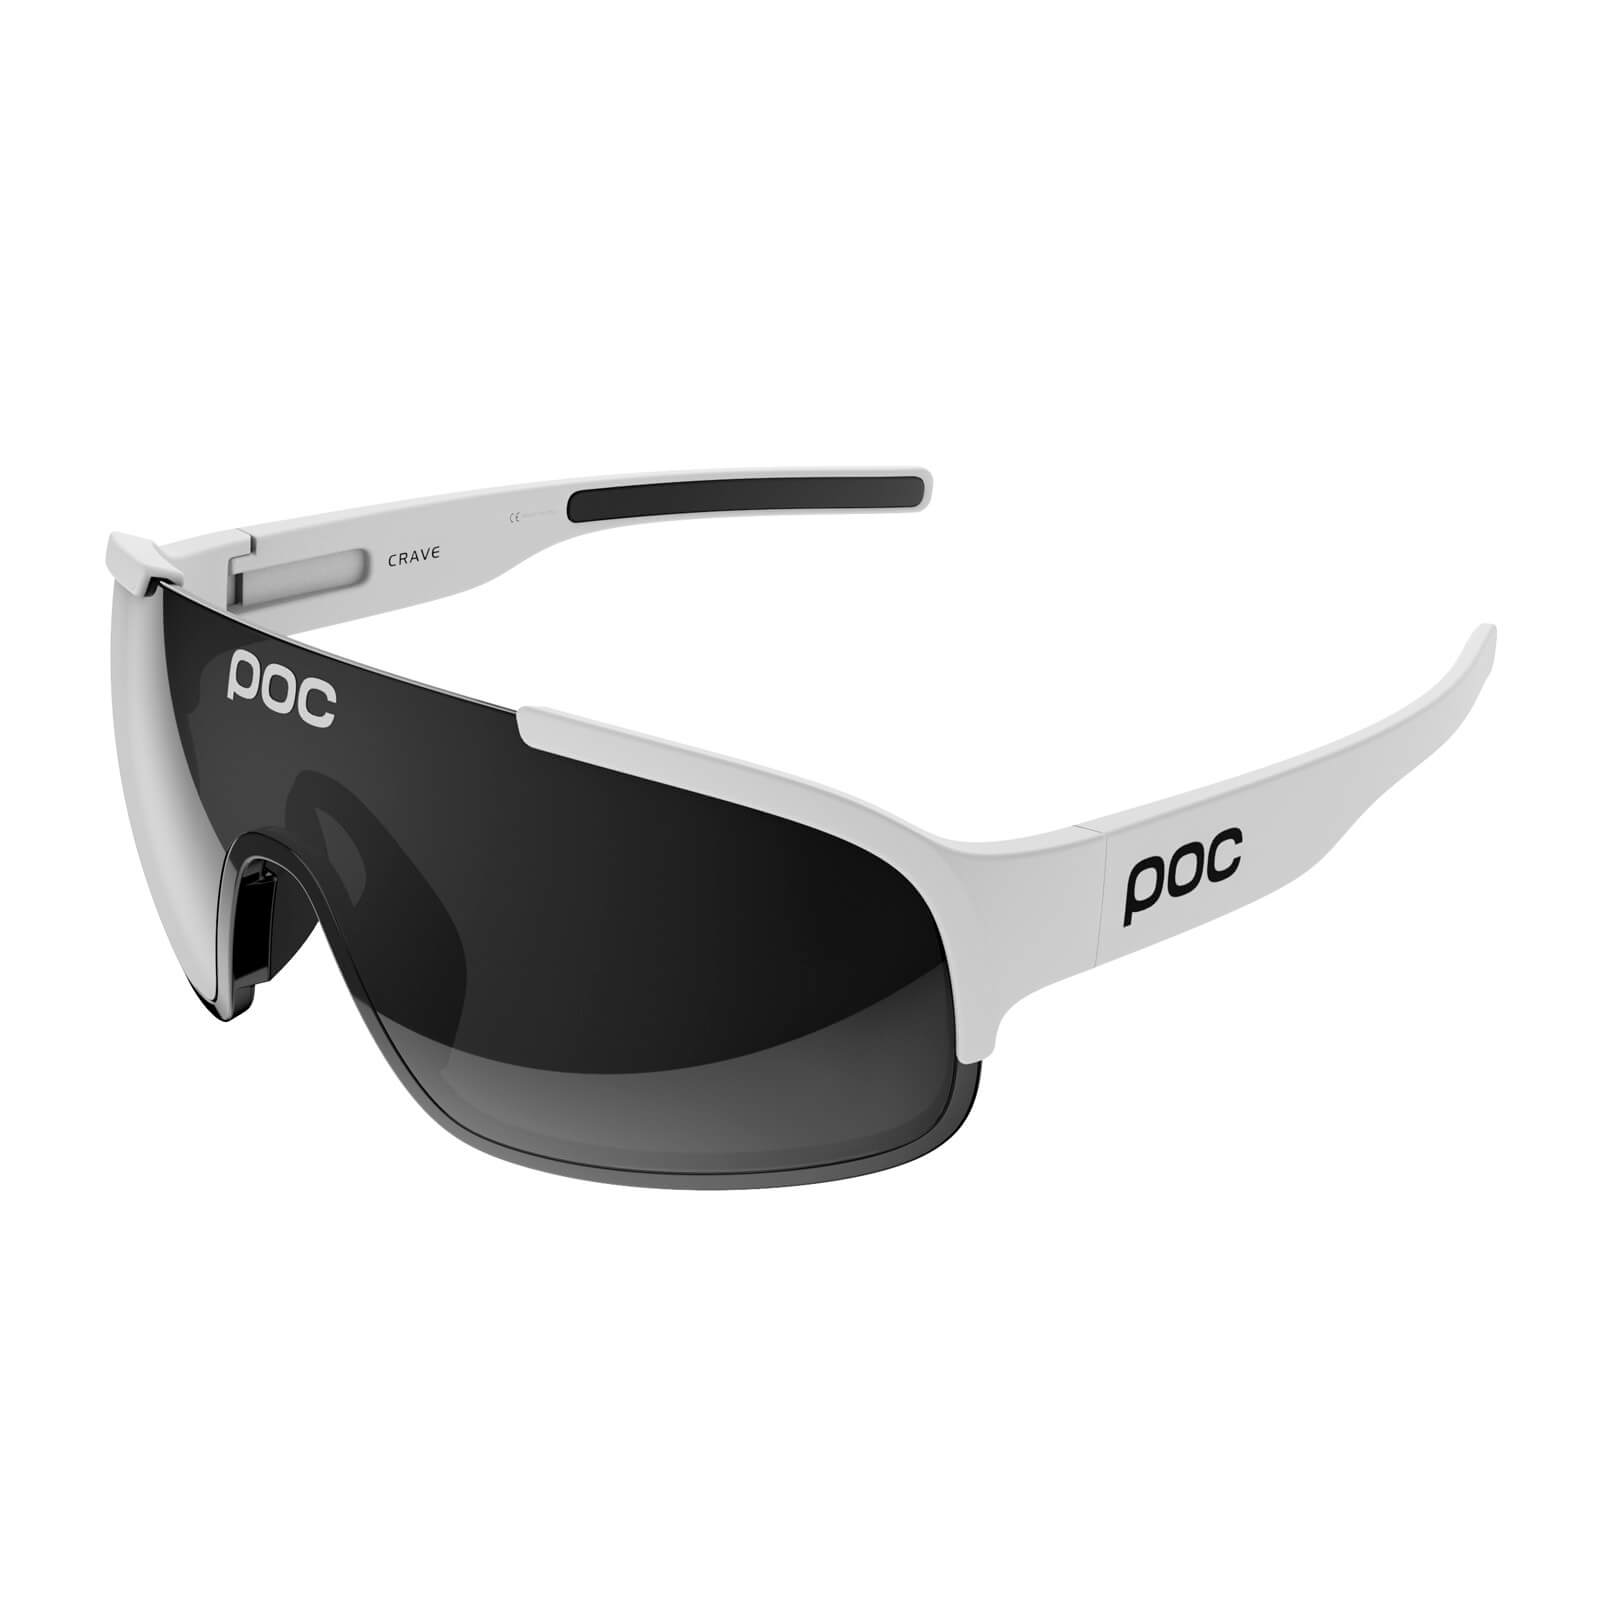 POC Crave Sunglasses - Hydrogen White